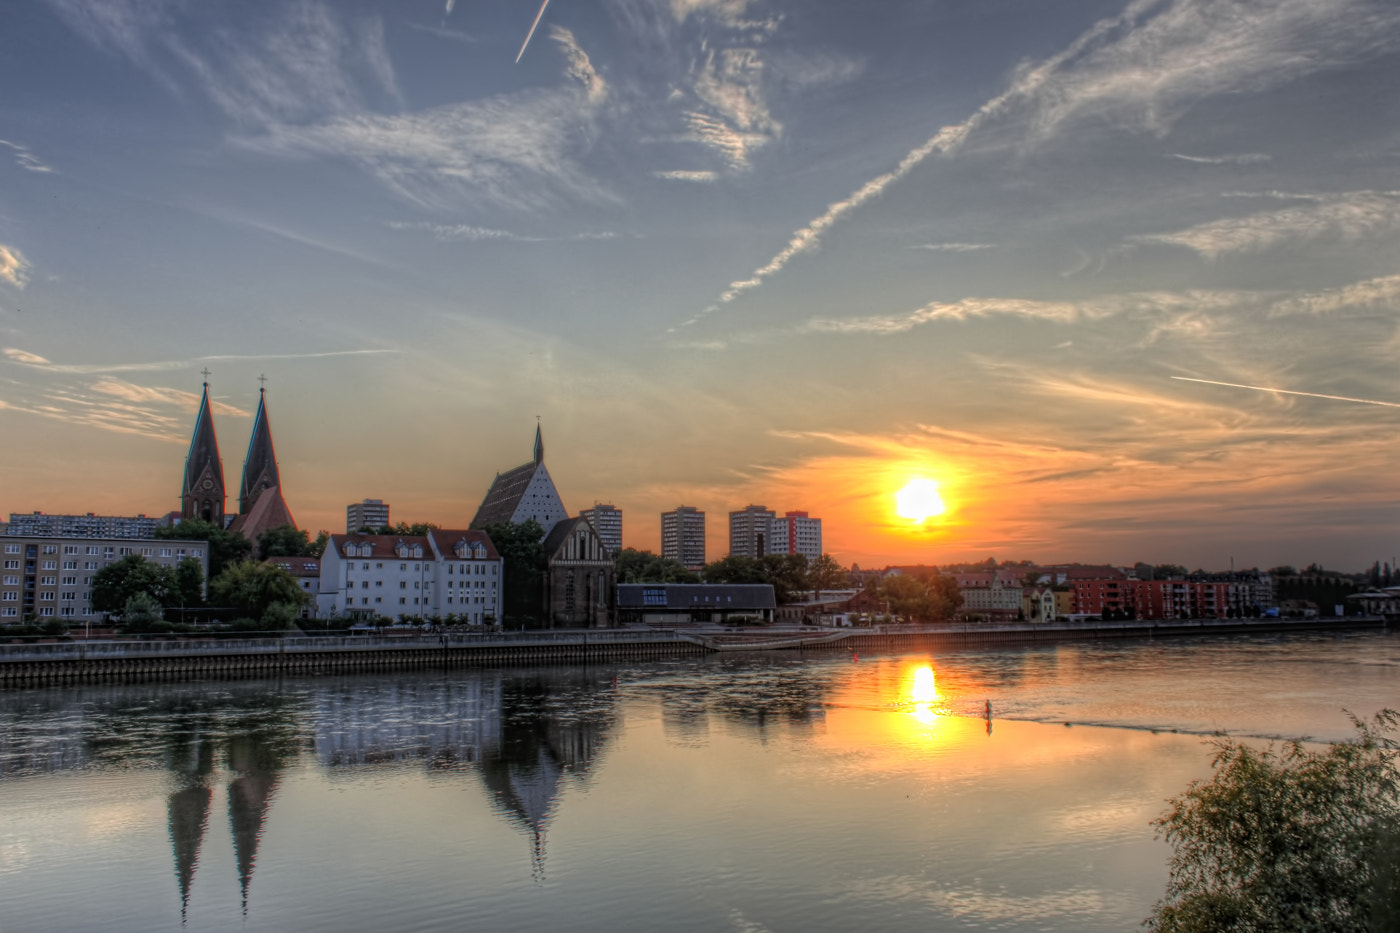 Photograph Sunset in Frankfurt (Oder) by Nico Trinkhaus on 500px